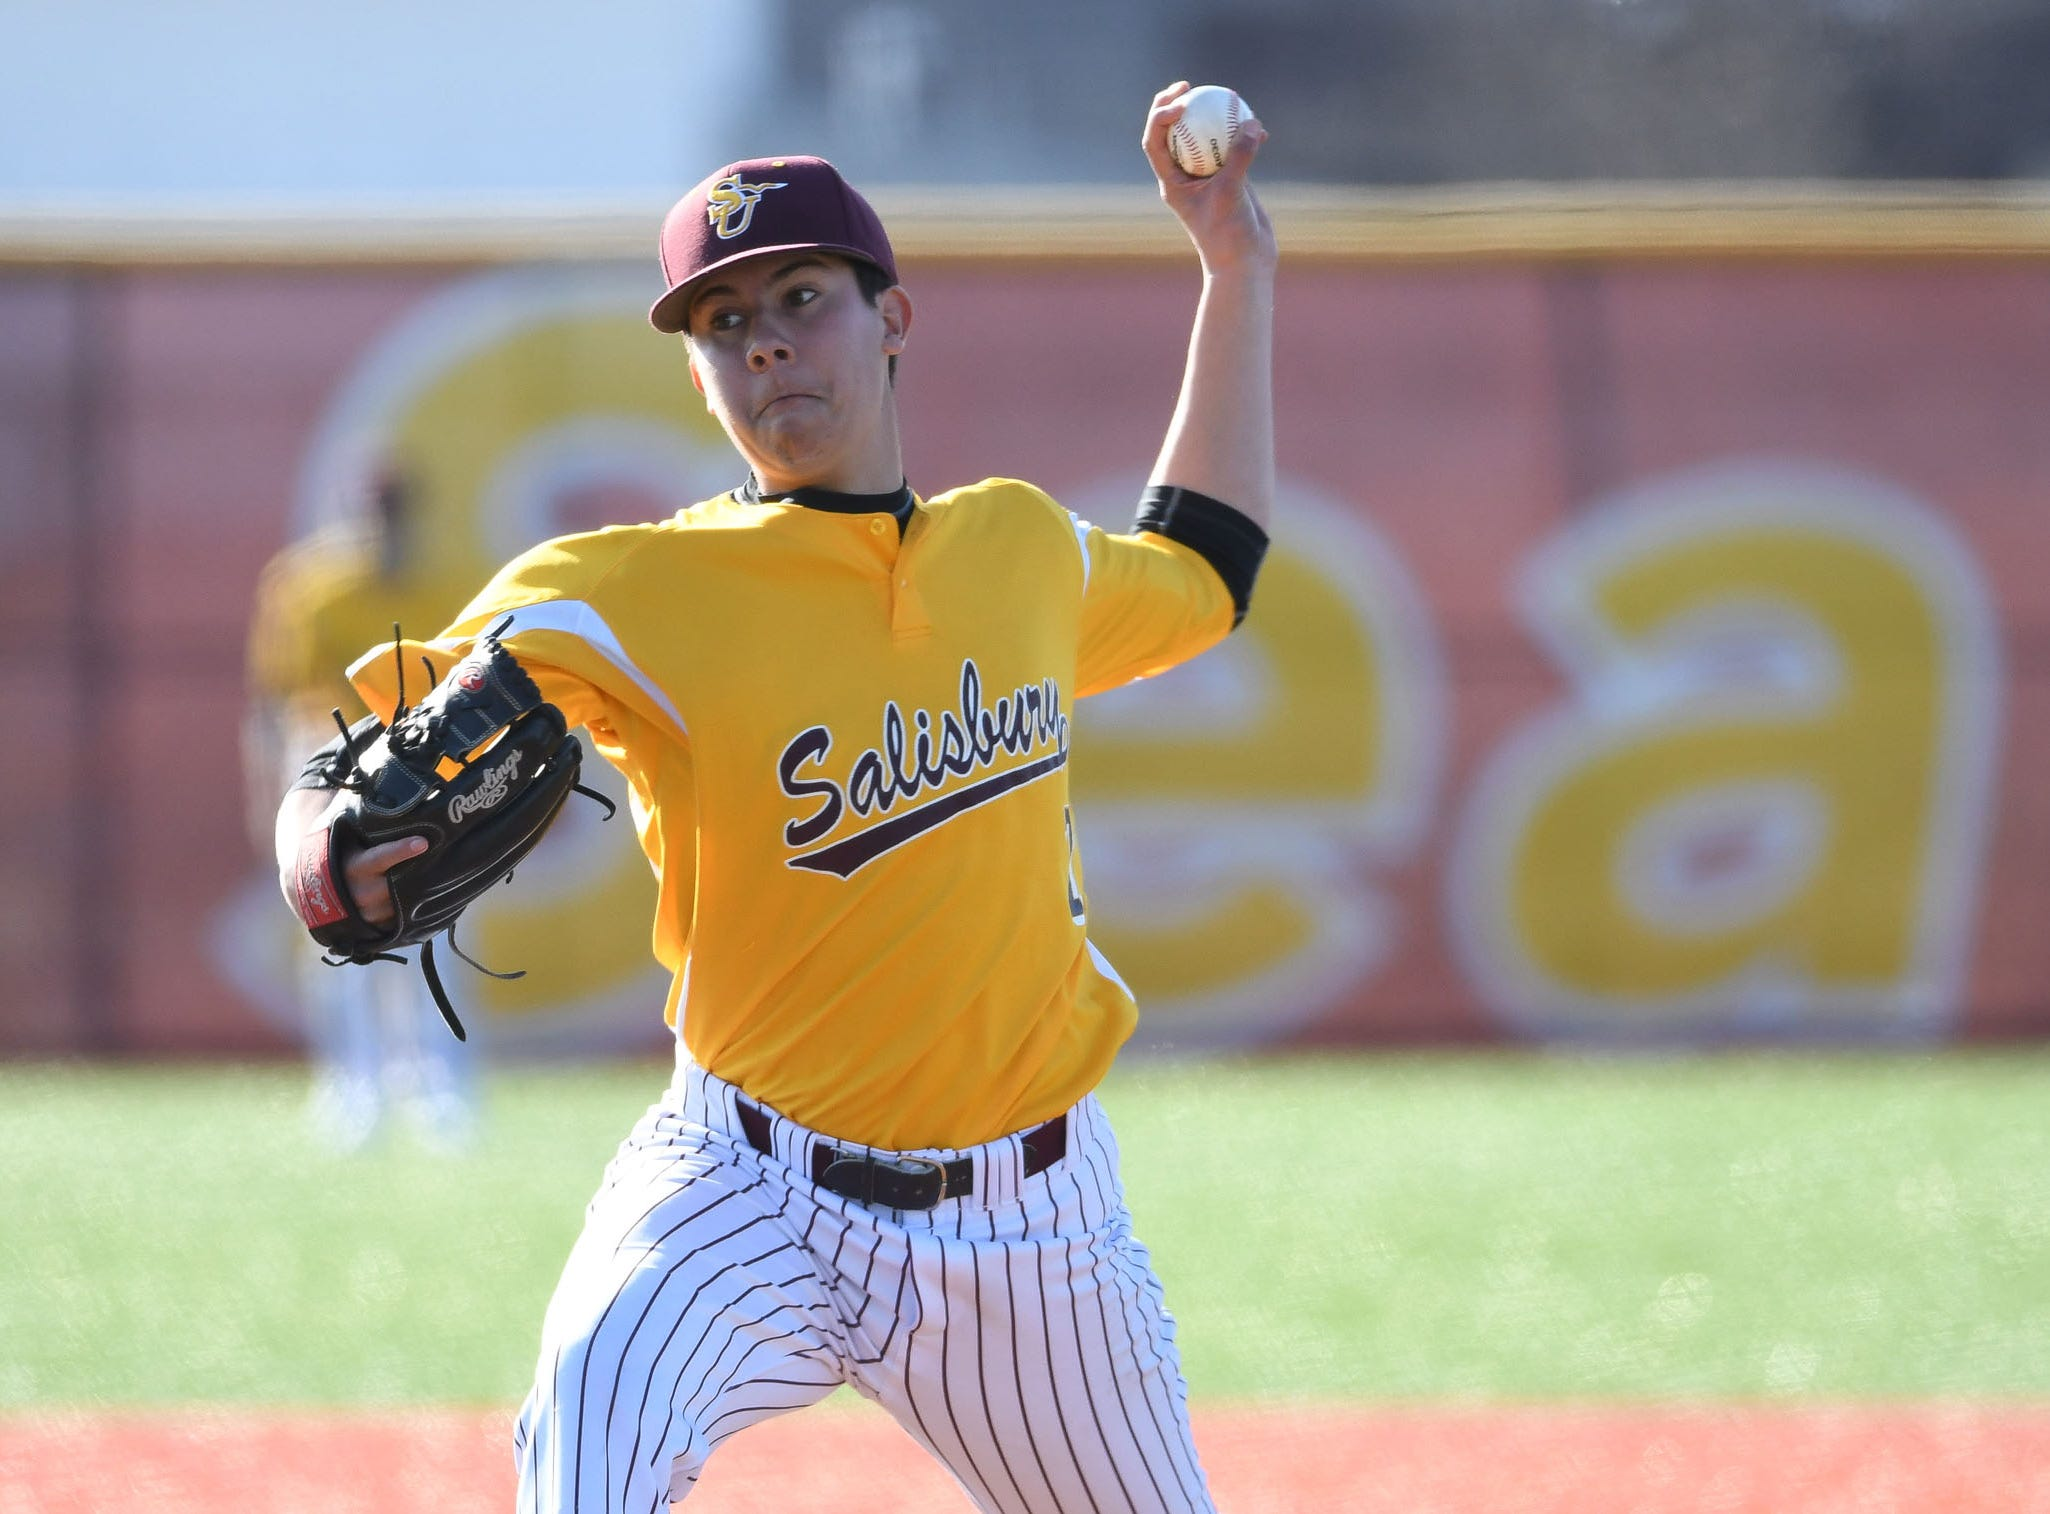 Salisbury University's Xavier Marmol on the mound against Wesley on Wednesday, April 3, 2019.